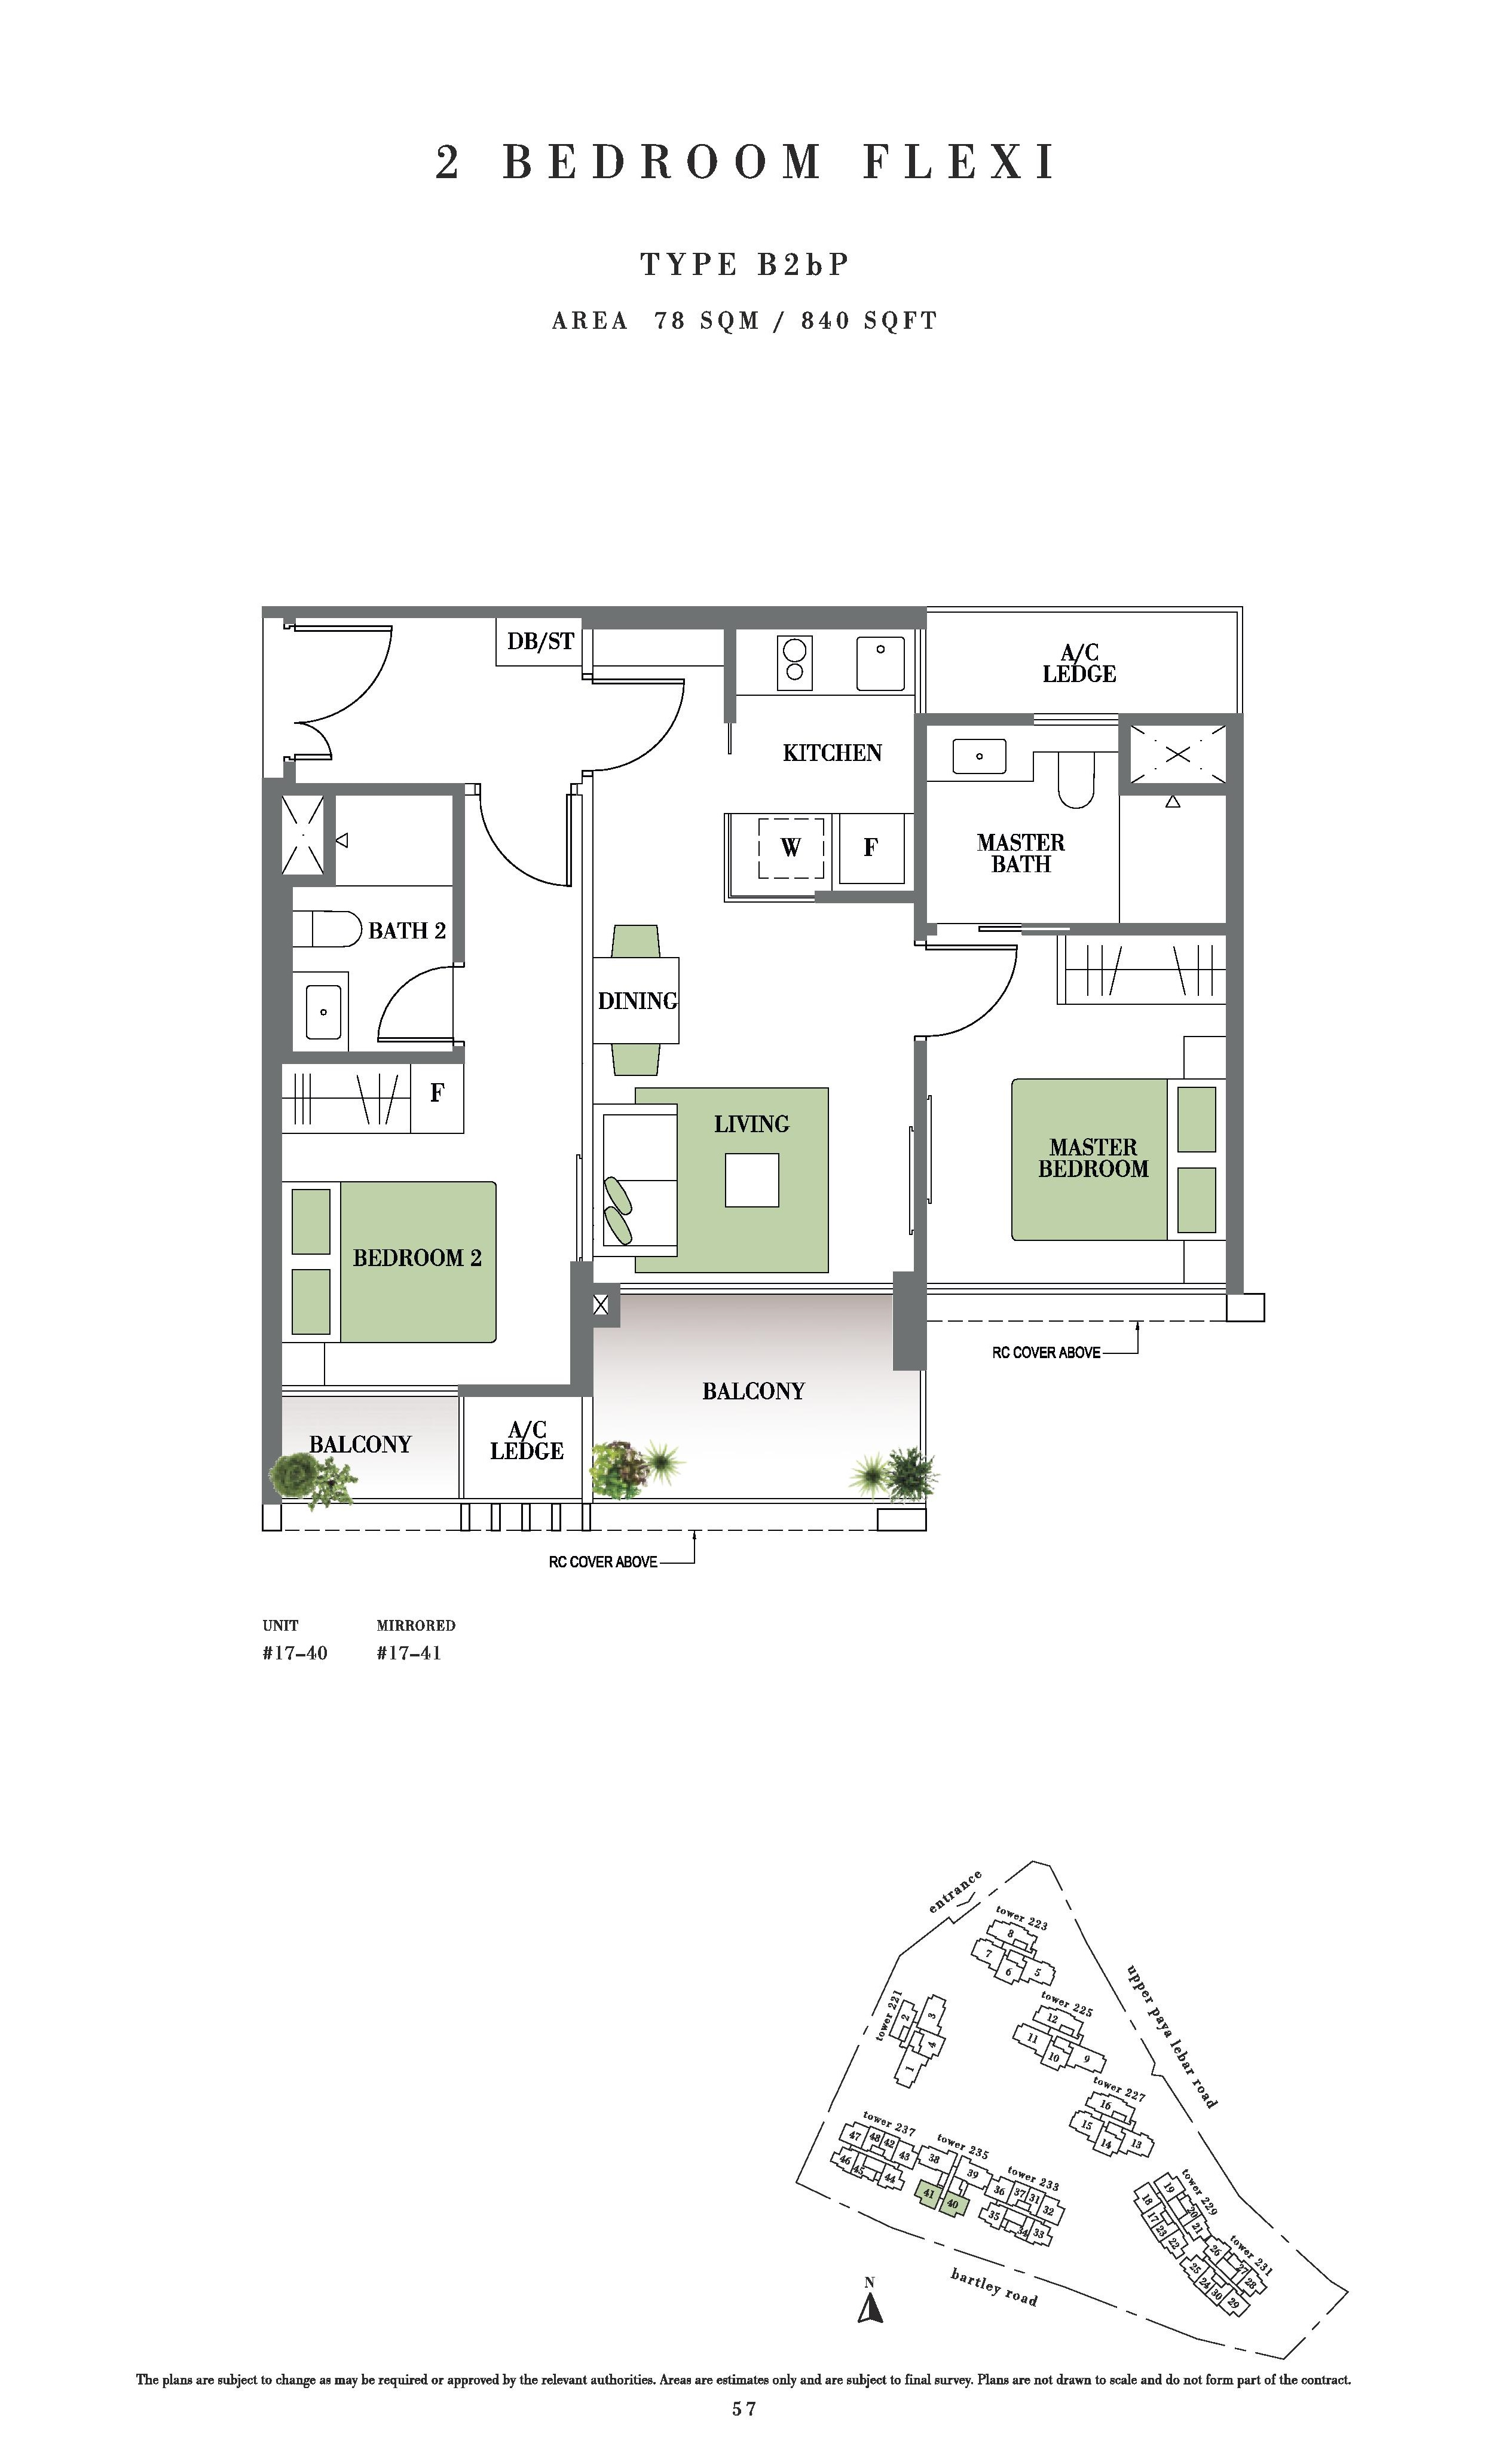 Botanique @ Bartley 2 Bedroom Flexi Floor Plans Type B2bP